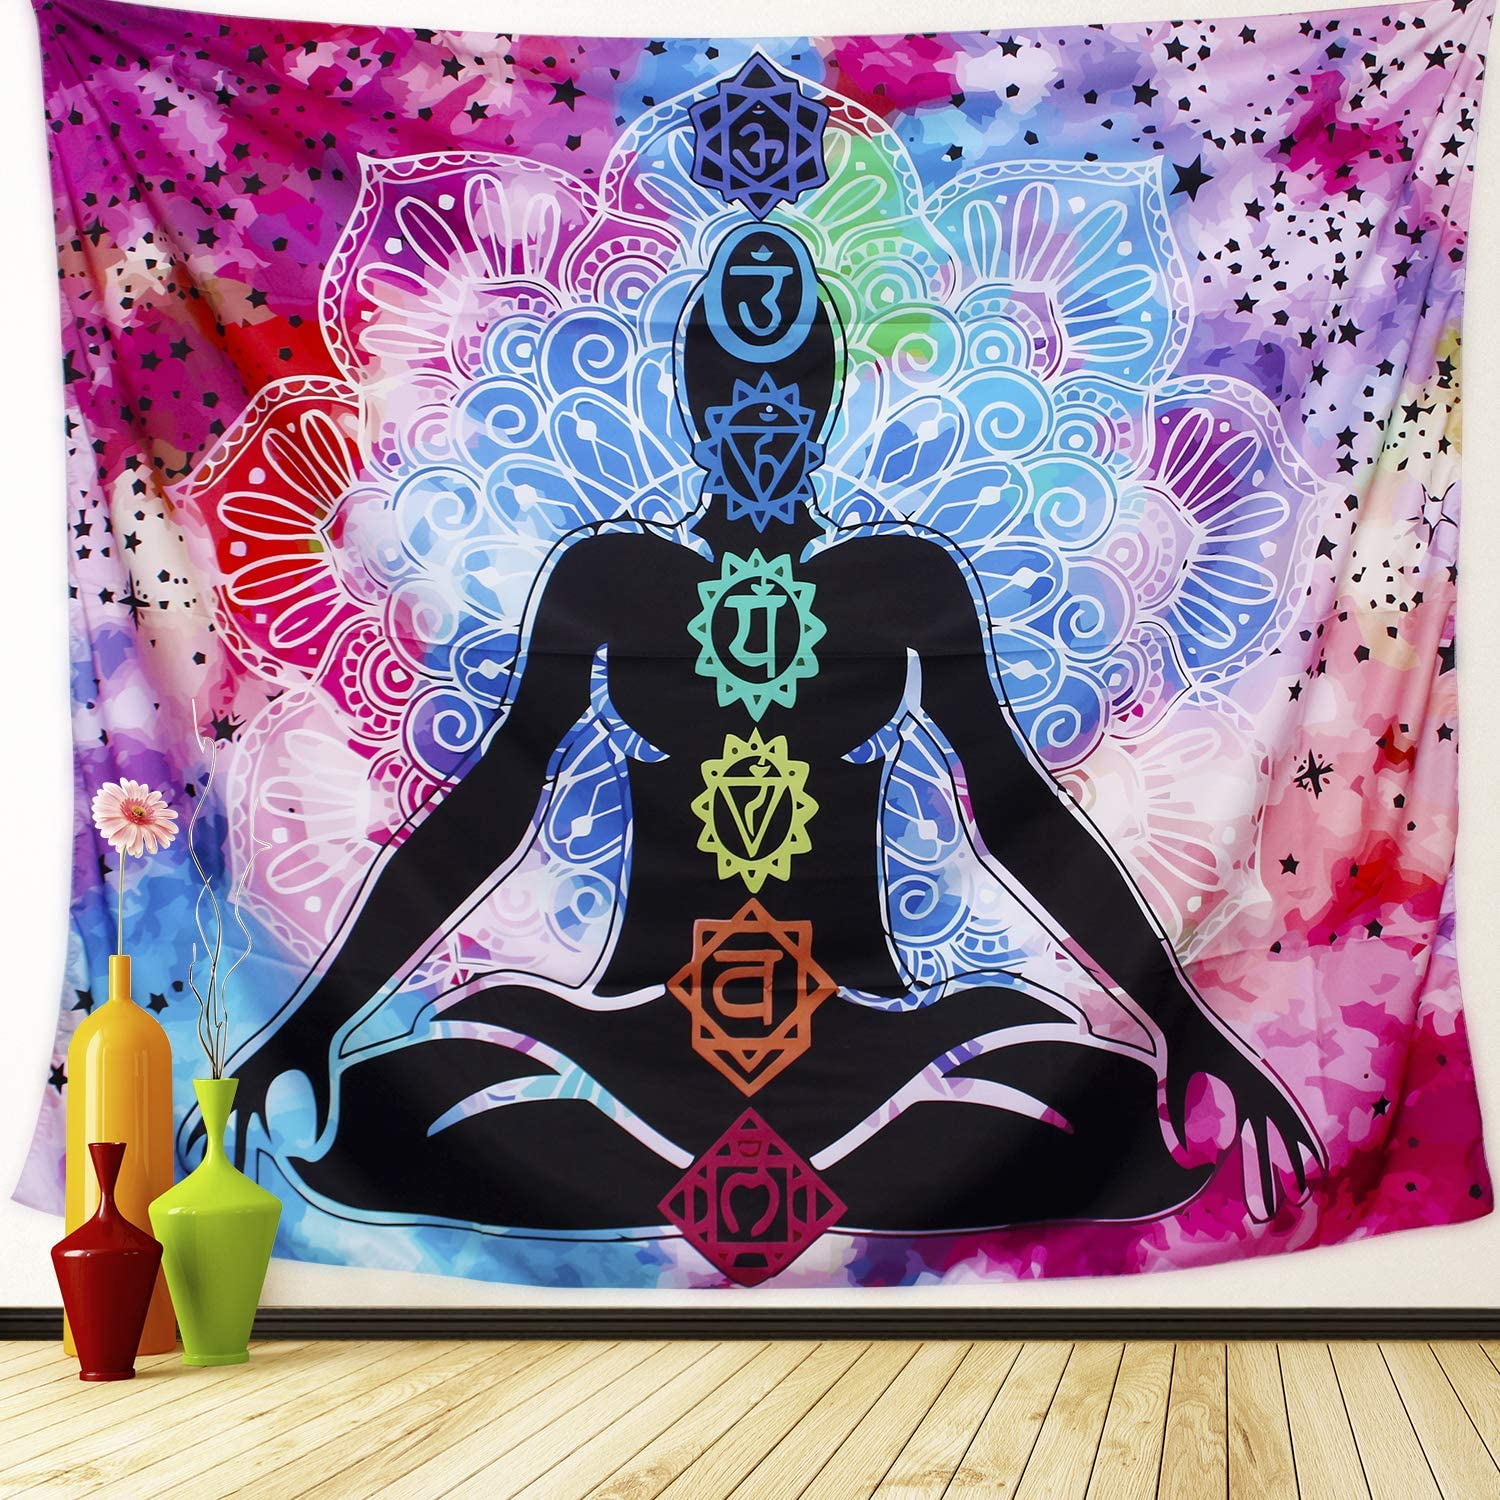 Amazon Com Anwiner Seven Chakra Tapestry Yoga Meditation Tapestry Colorful Mandala Wall Tapestry Bohemian Hippie Tapestry For Studio Living Room Bedroom Dorm Room 59x 51 Inches Everything Else